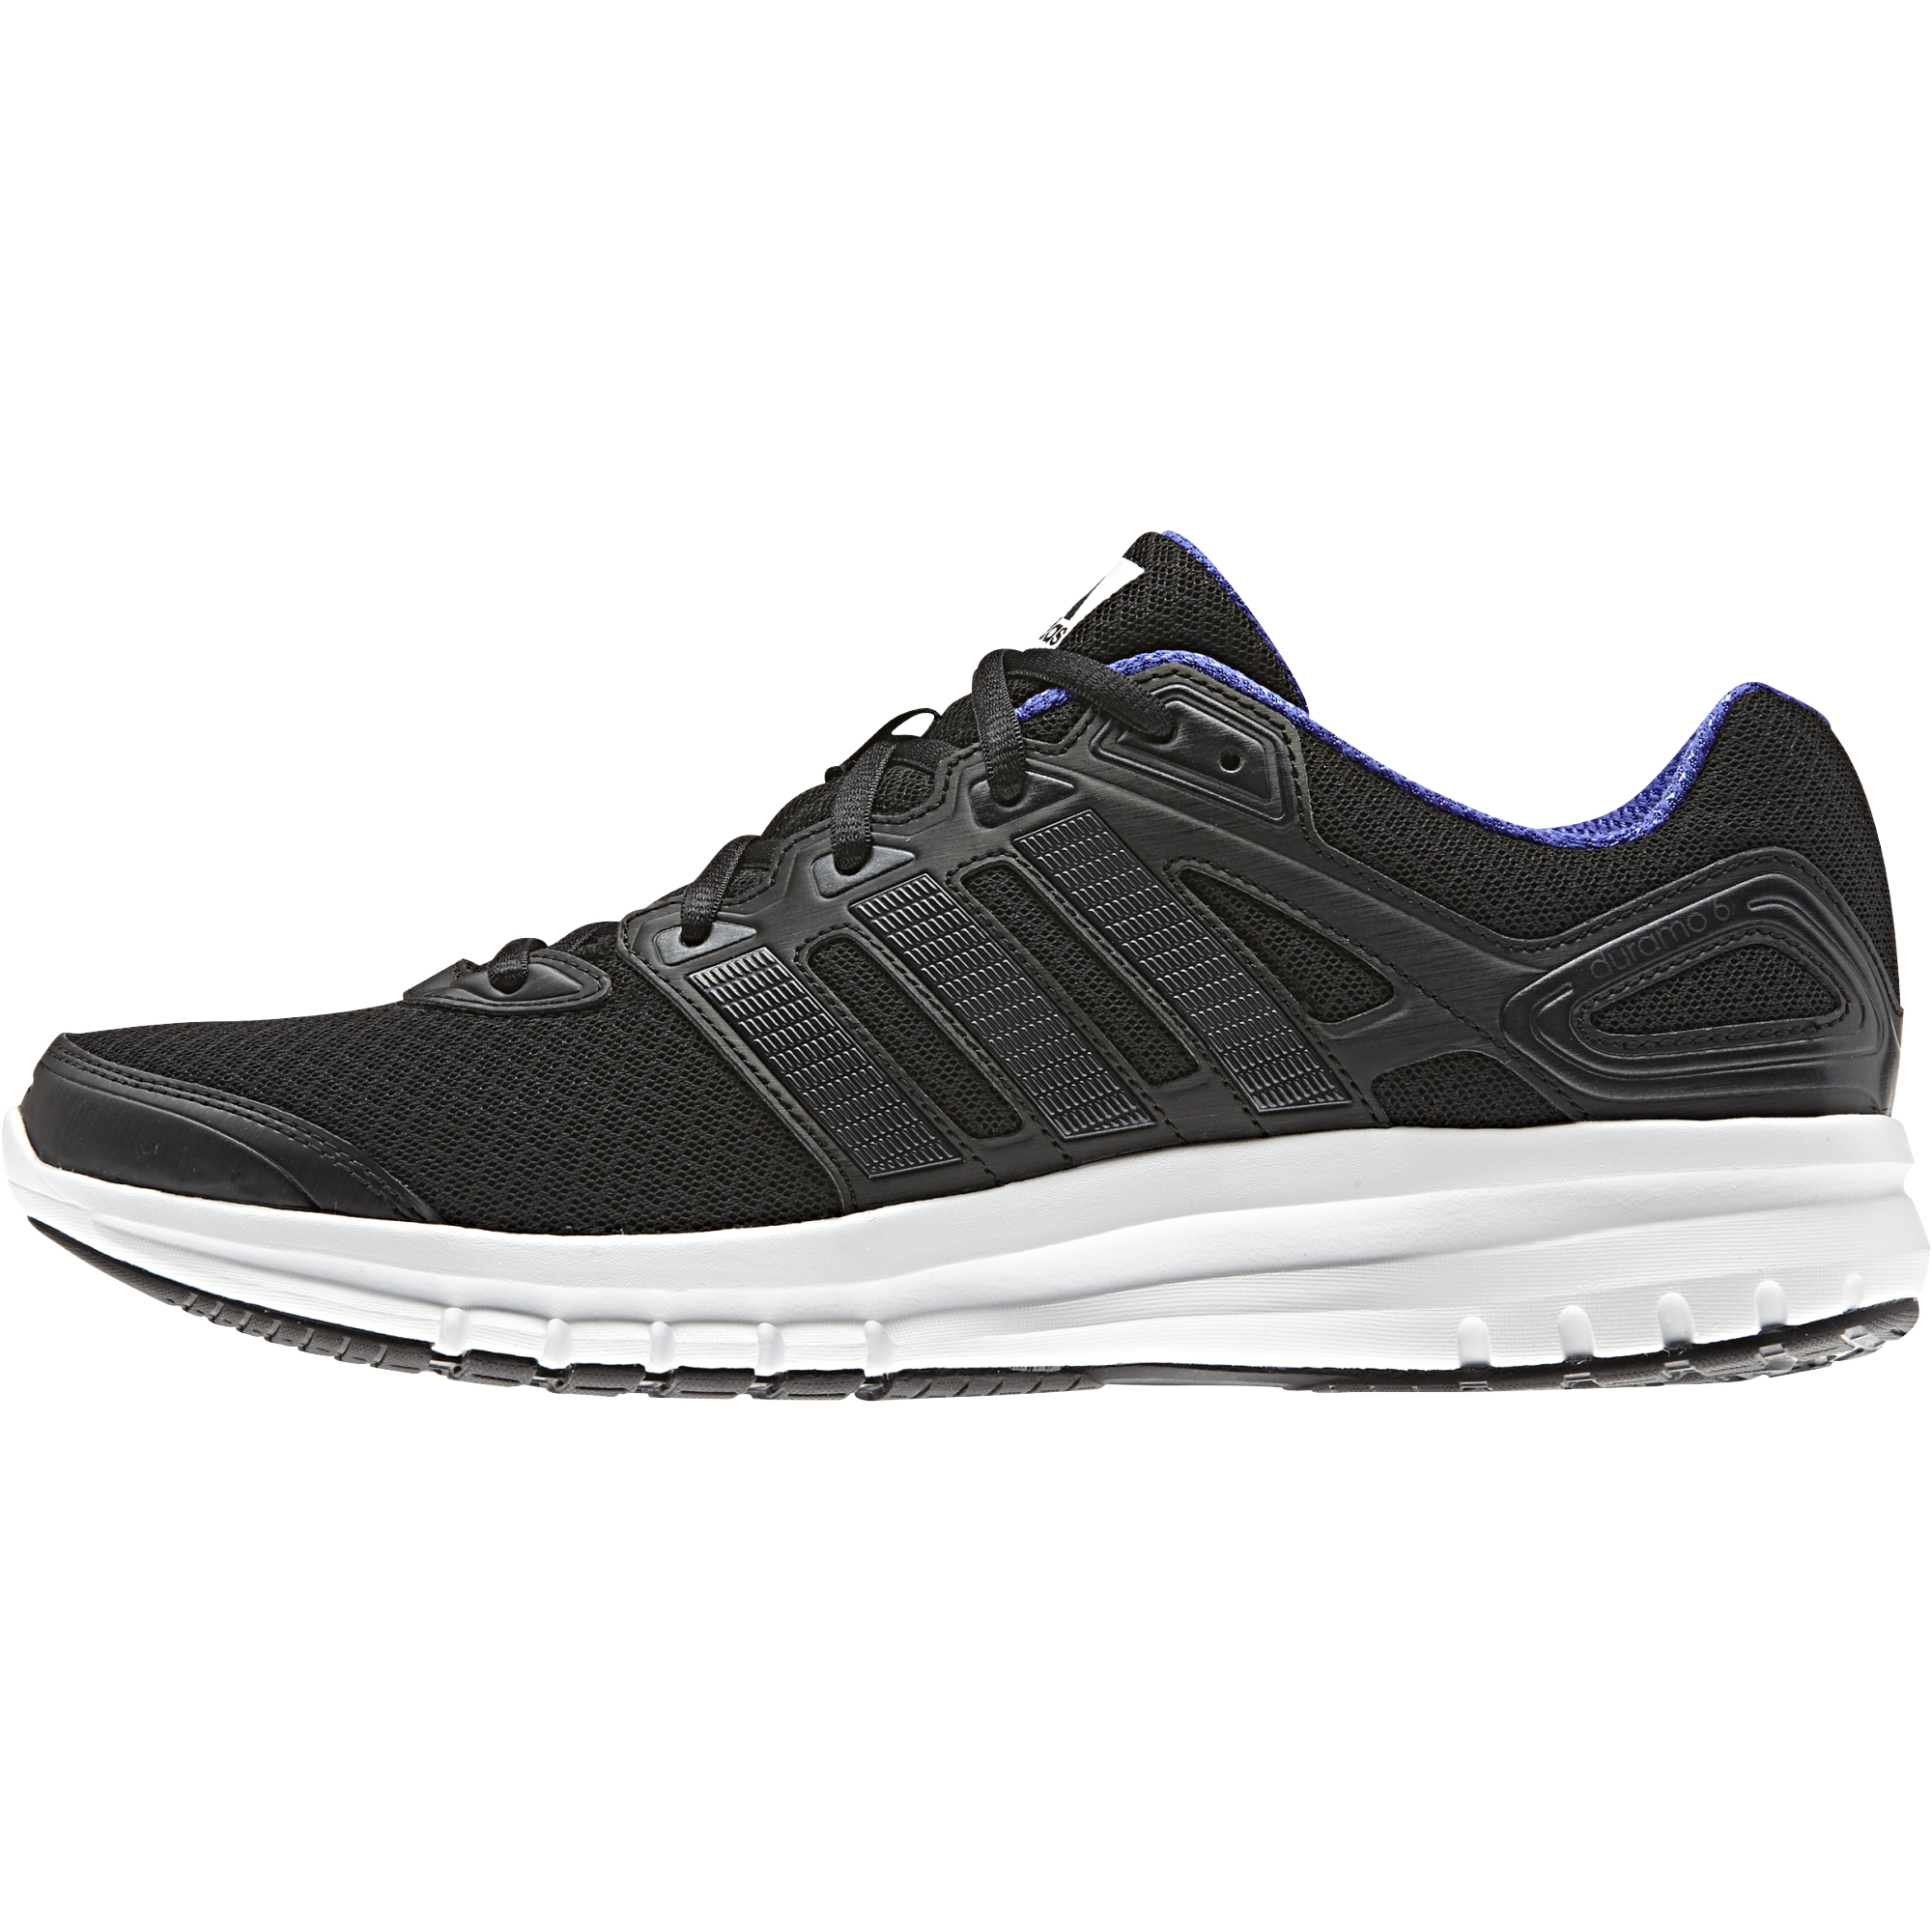 Total Sports Adidas Sneakers | OIS Group